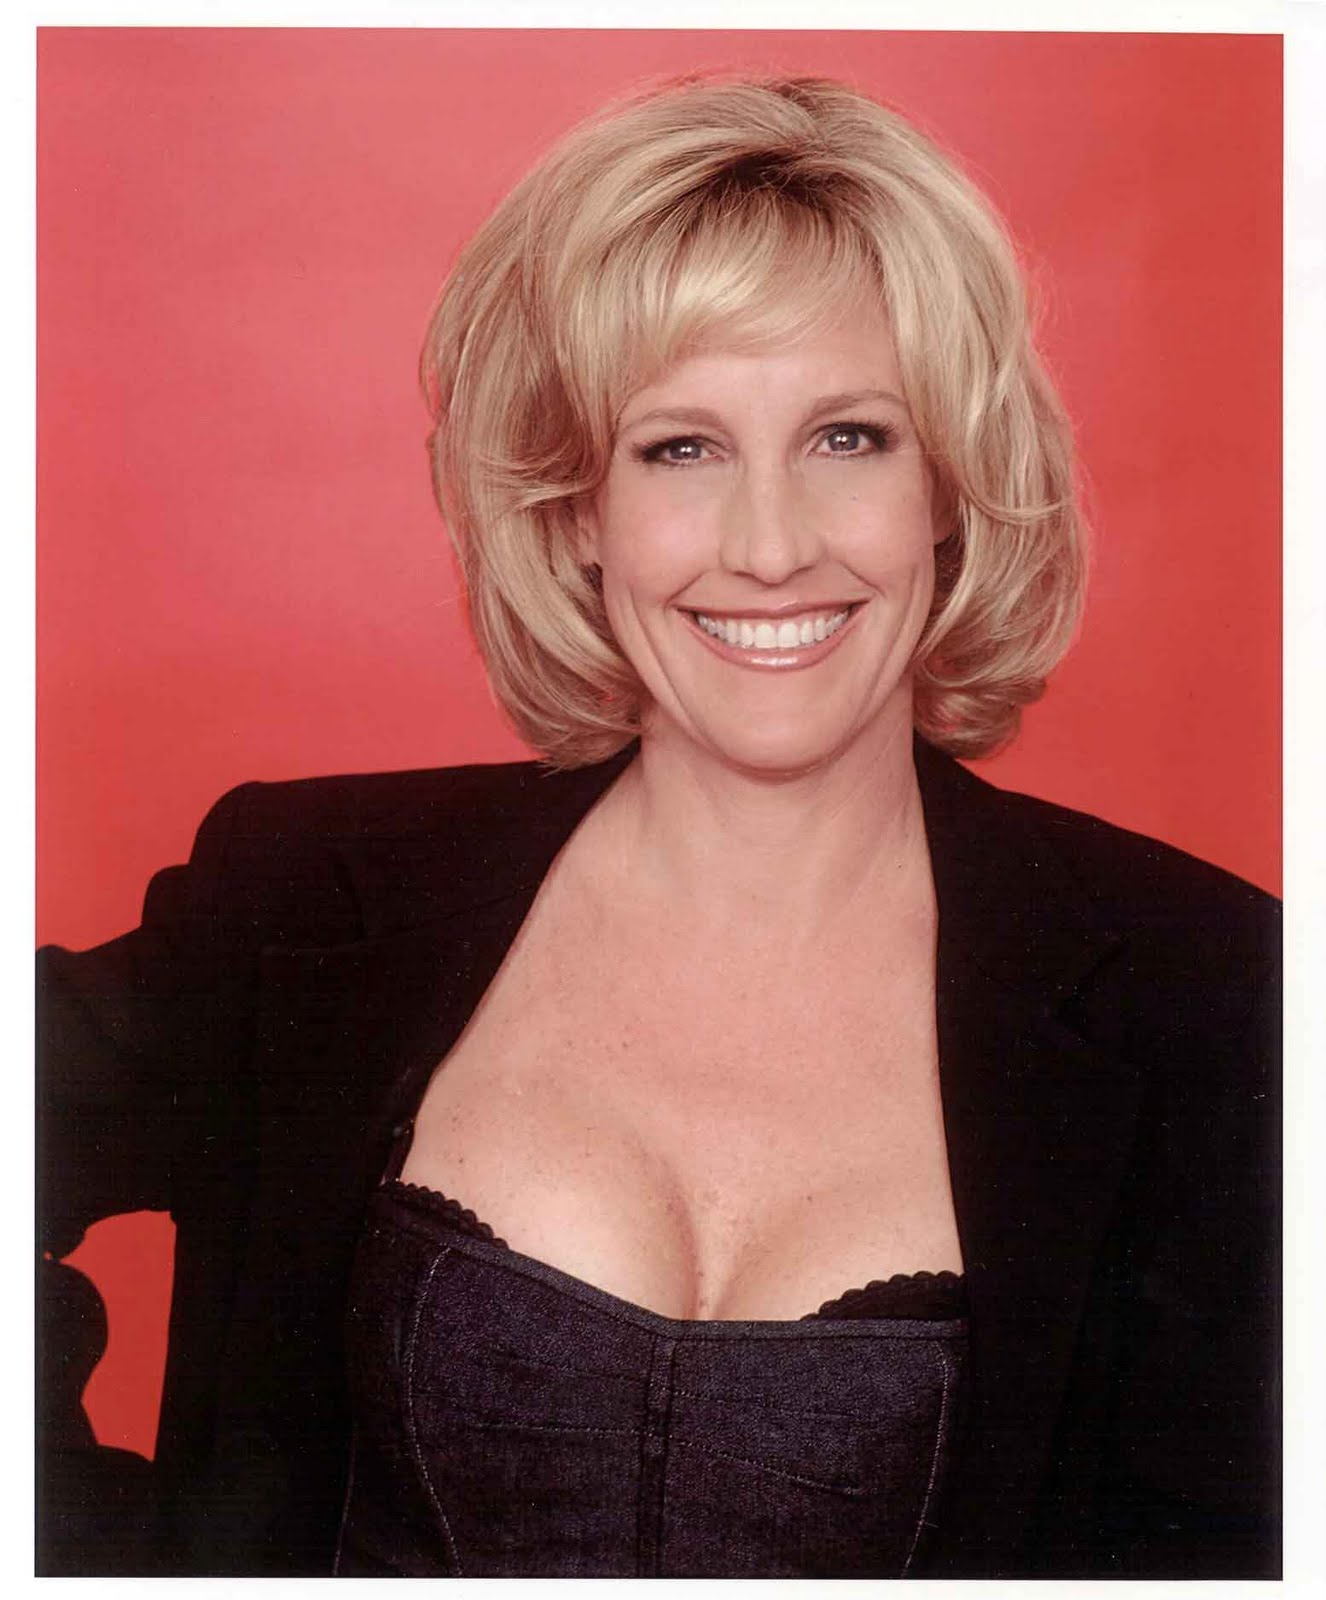 hot water erin brockovich cj lyons erin brockovich author of hot water is the real life inspiration behind the oscar winning movie that bears her today she continues to perform legal